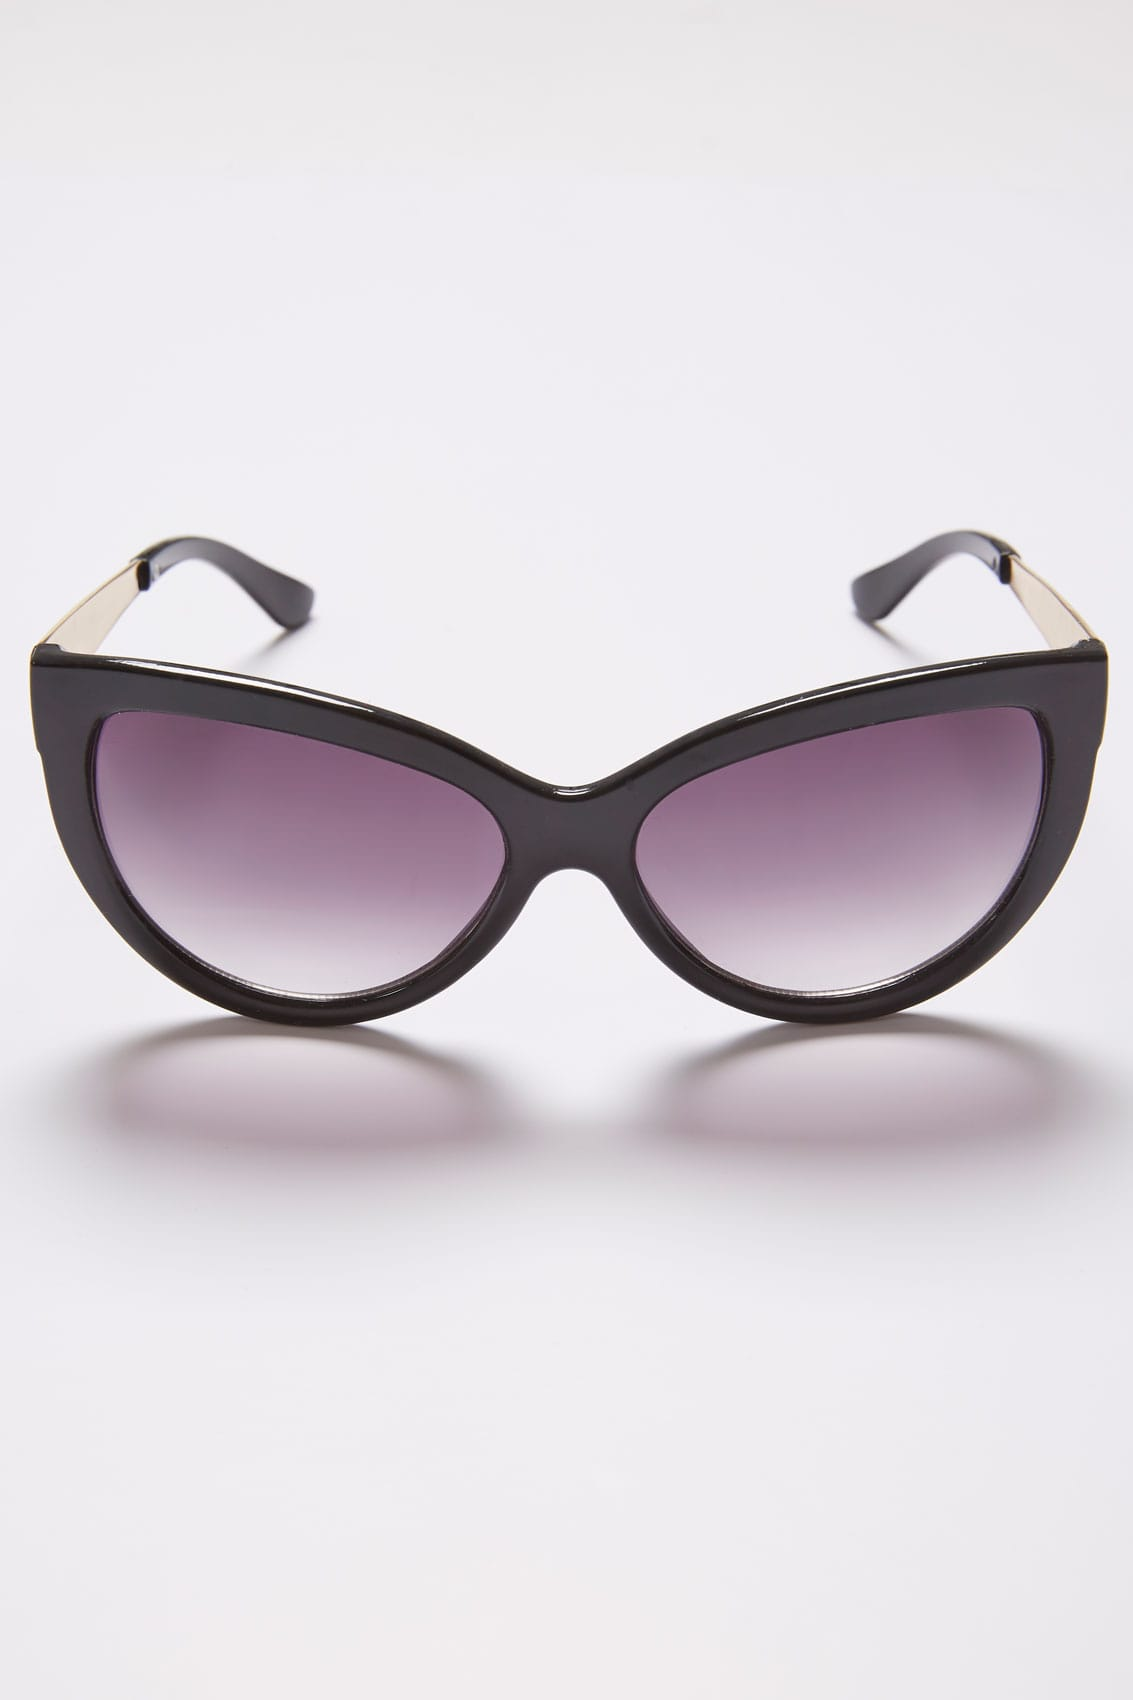 Black Cat Eye Sunglasses With Gold Tone Arms With Uv 400